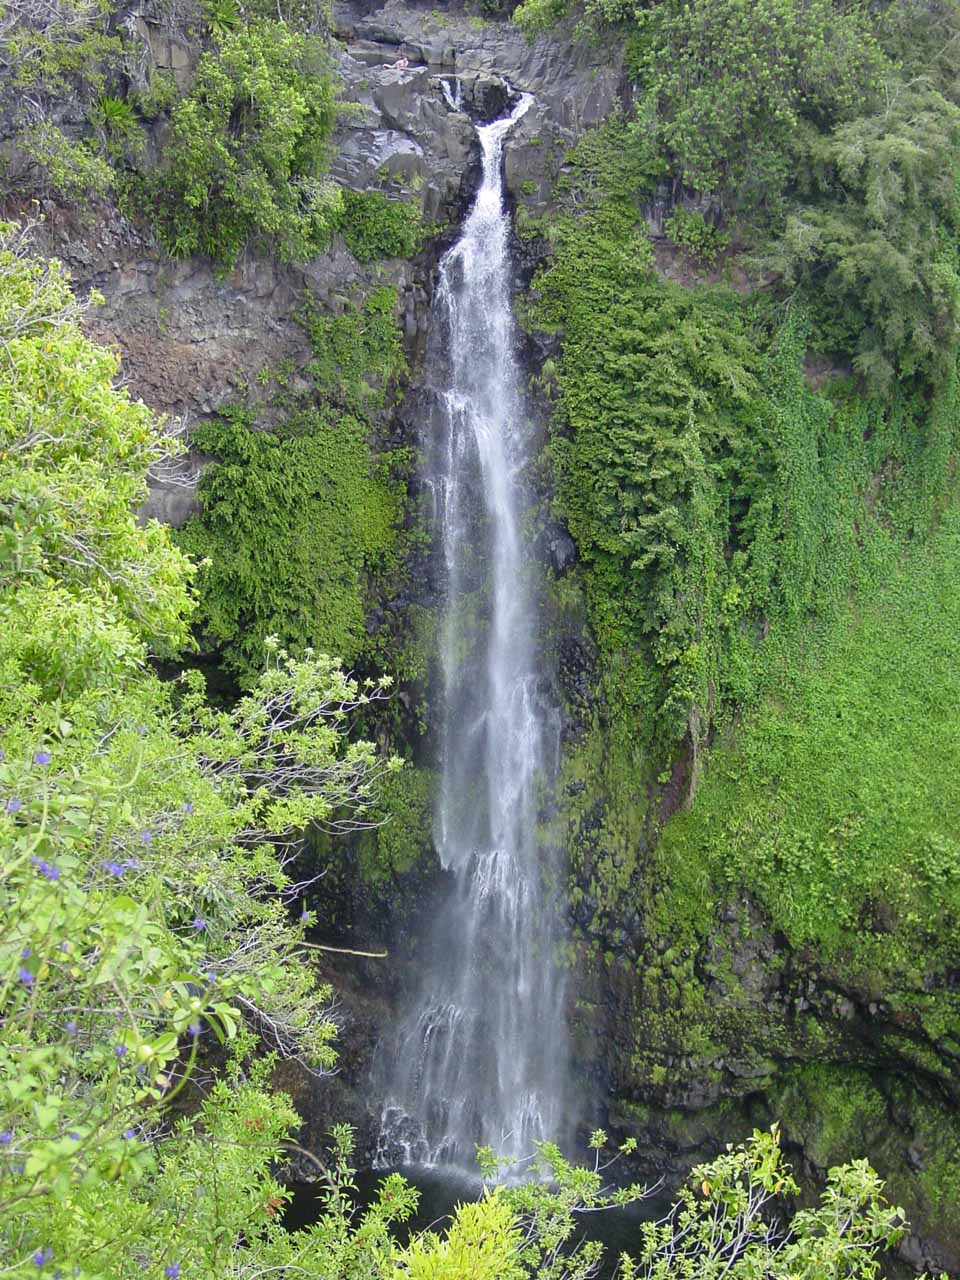 Closer look at the impressive Makahiku Falls in moderate flow back in 2003